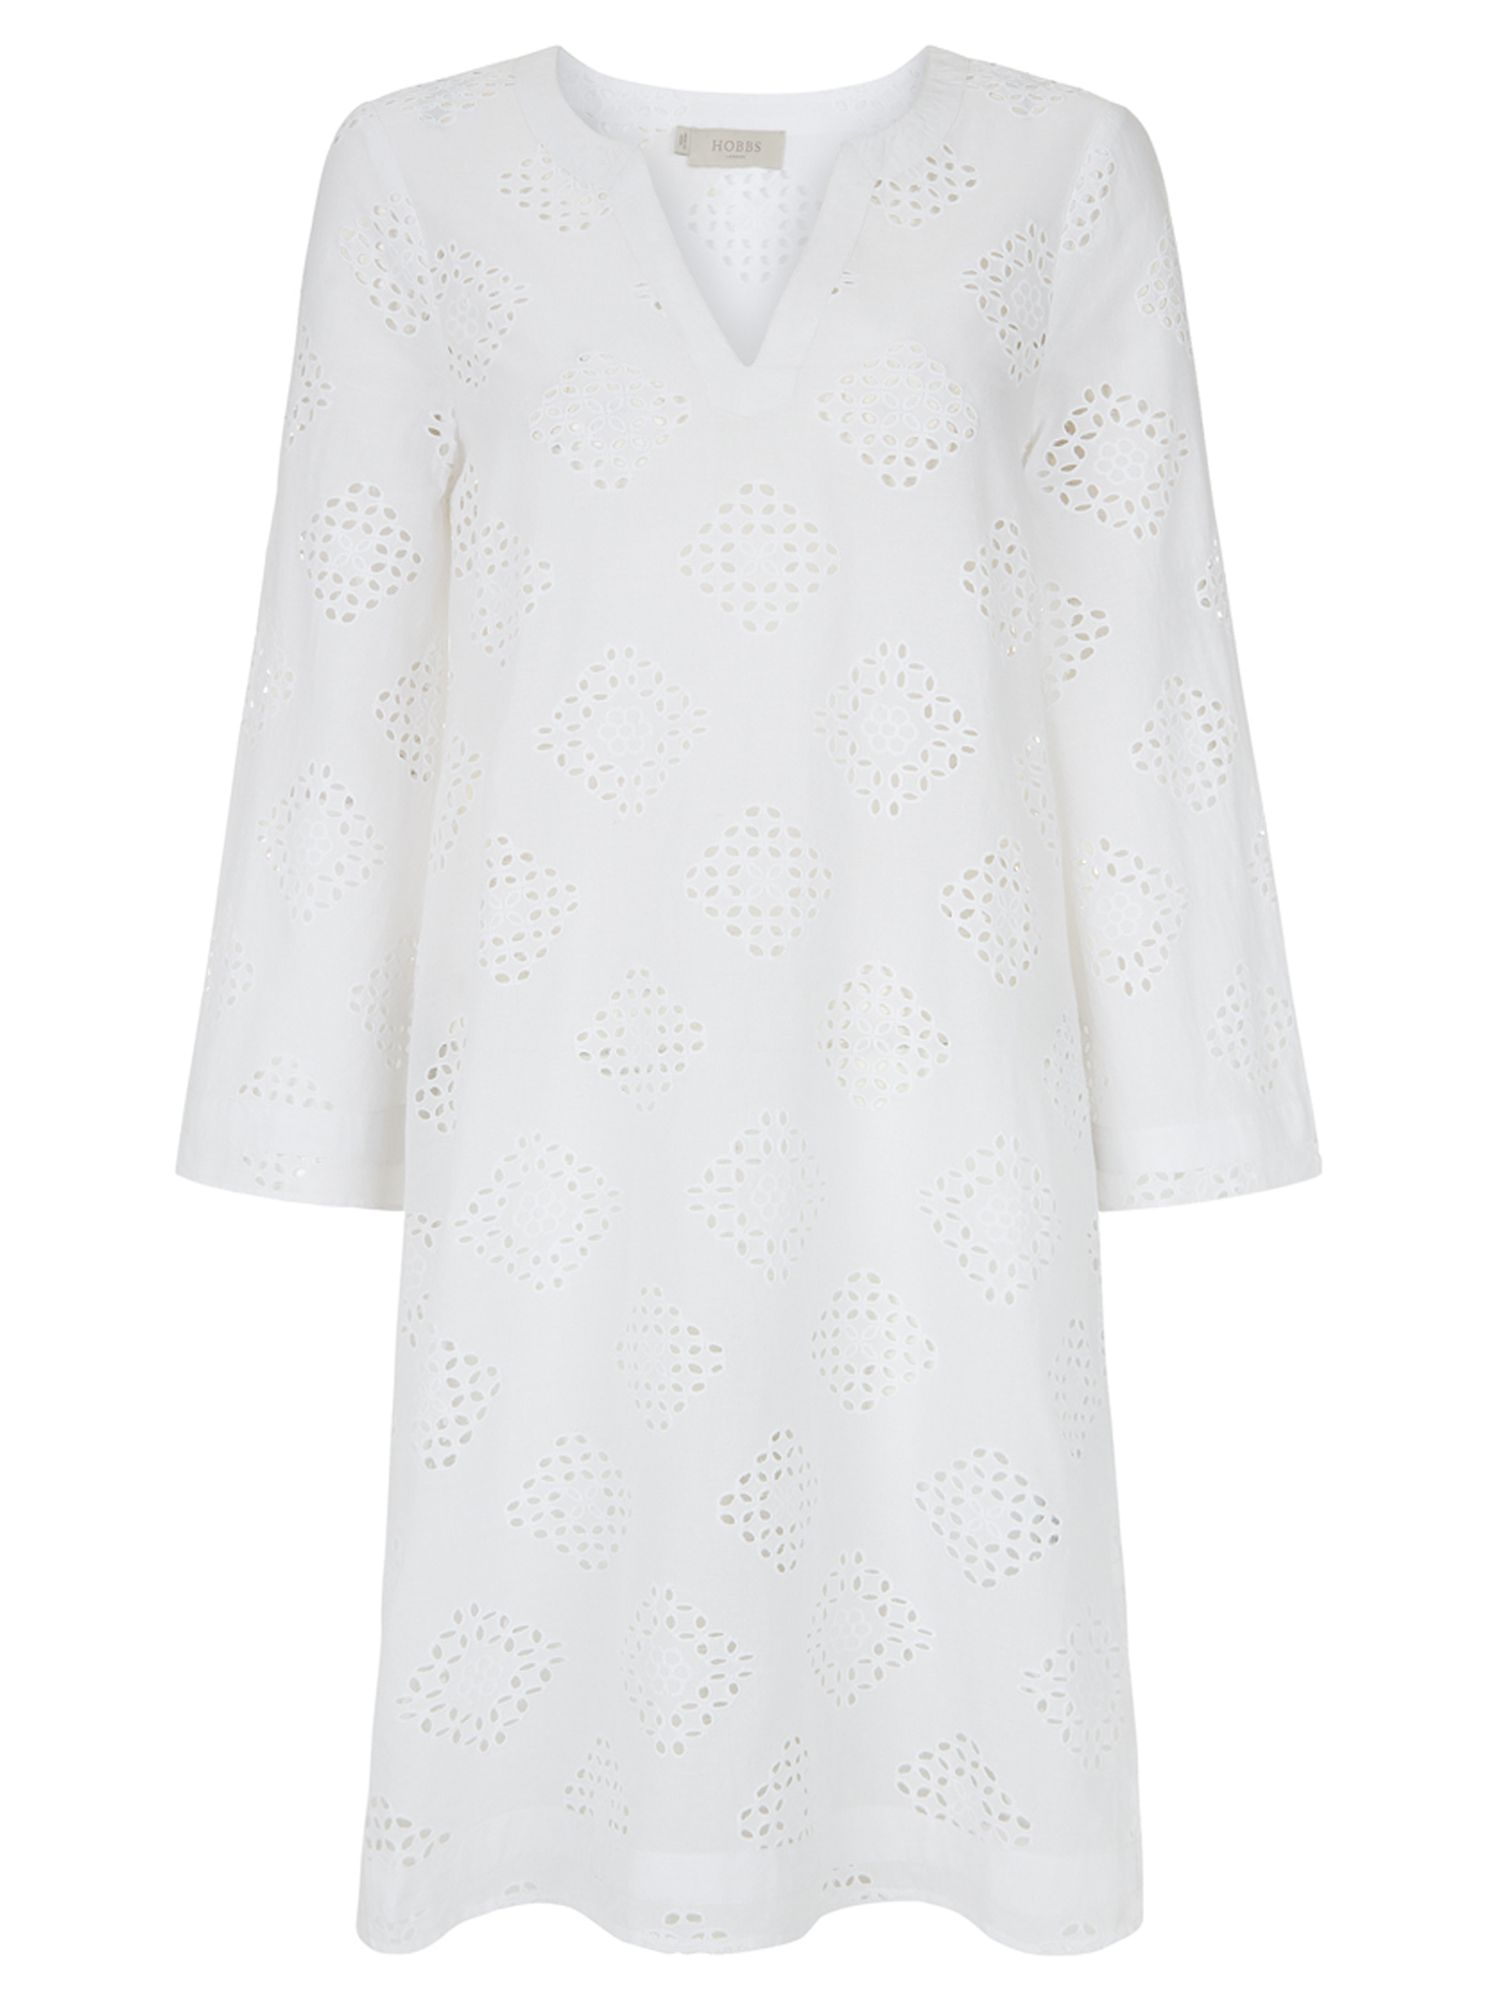 Hobbs Esther Cover Up, White